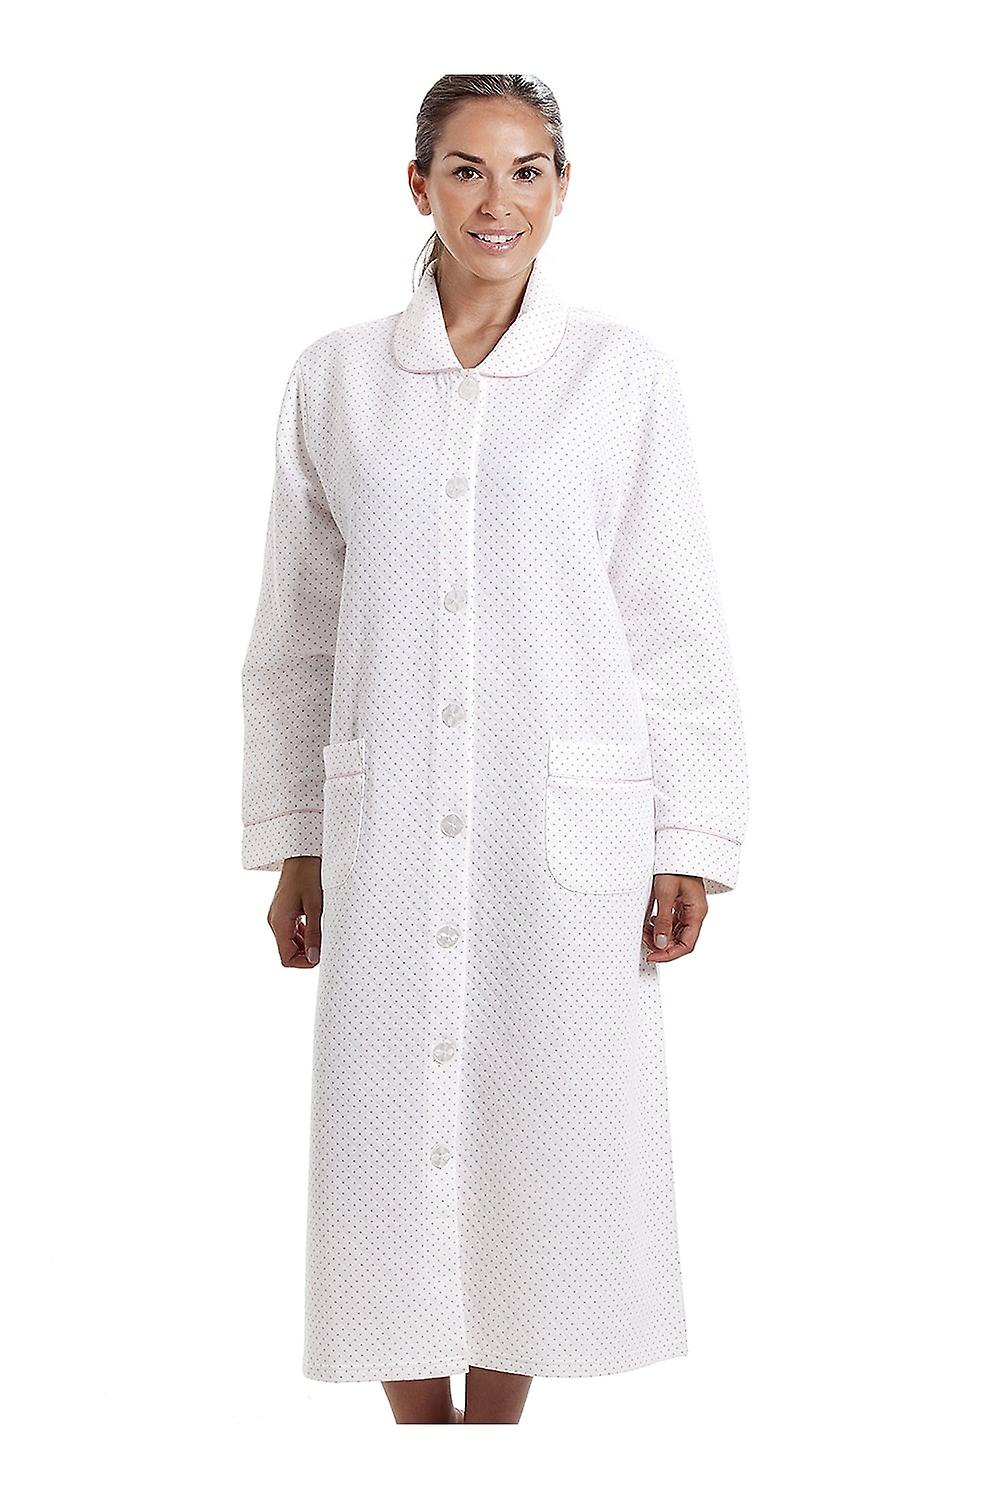 Camille Womens White House Coat With A Pink Dot Print